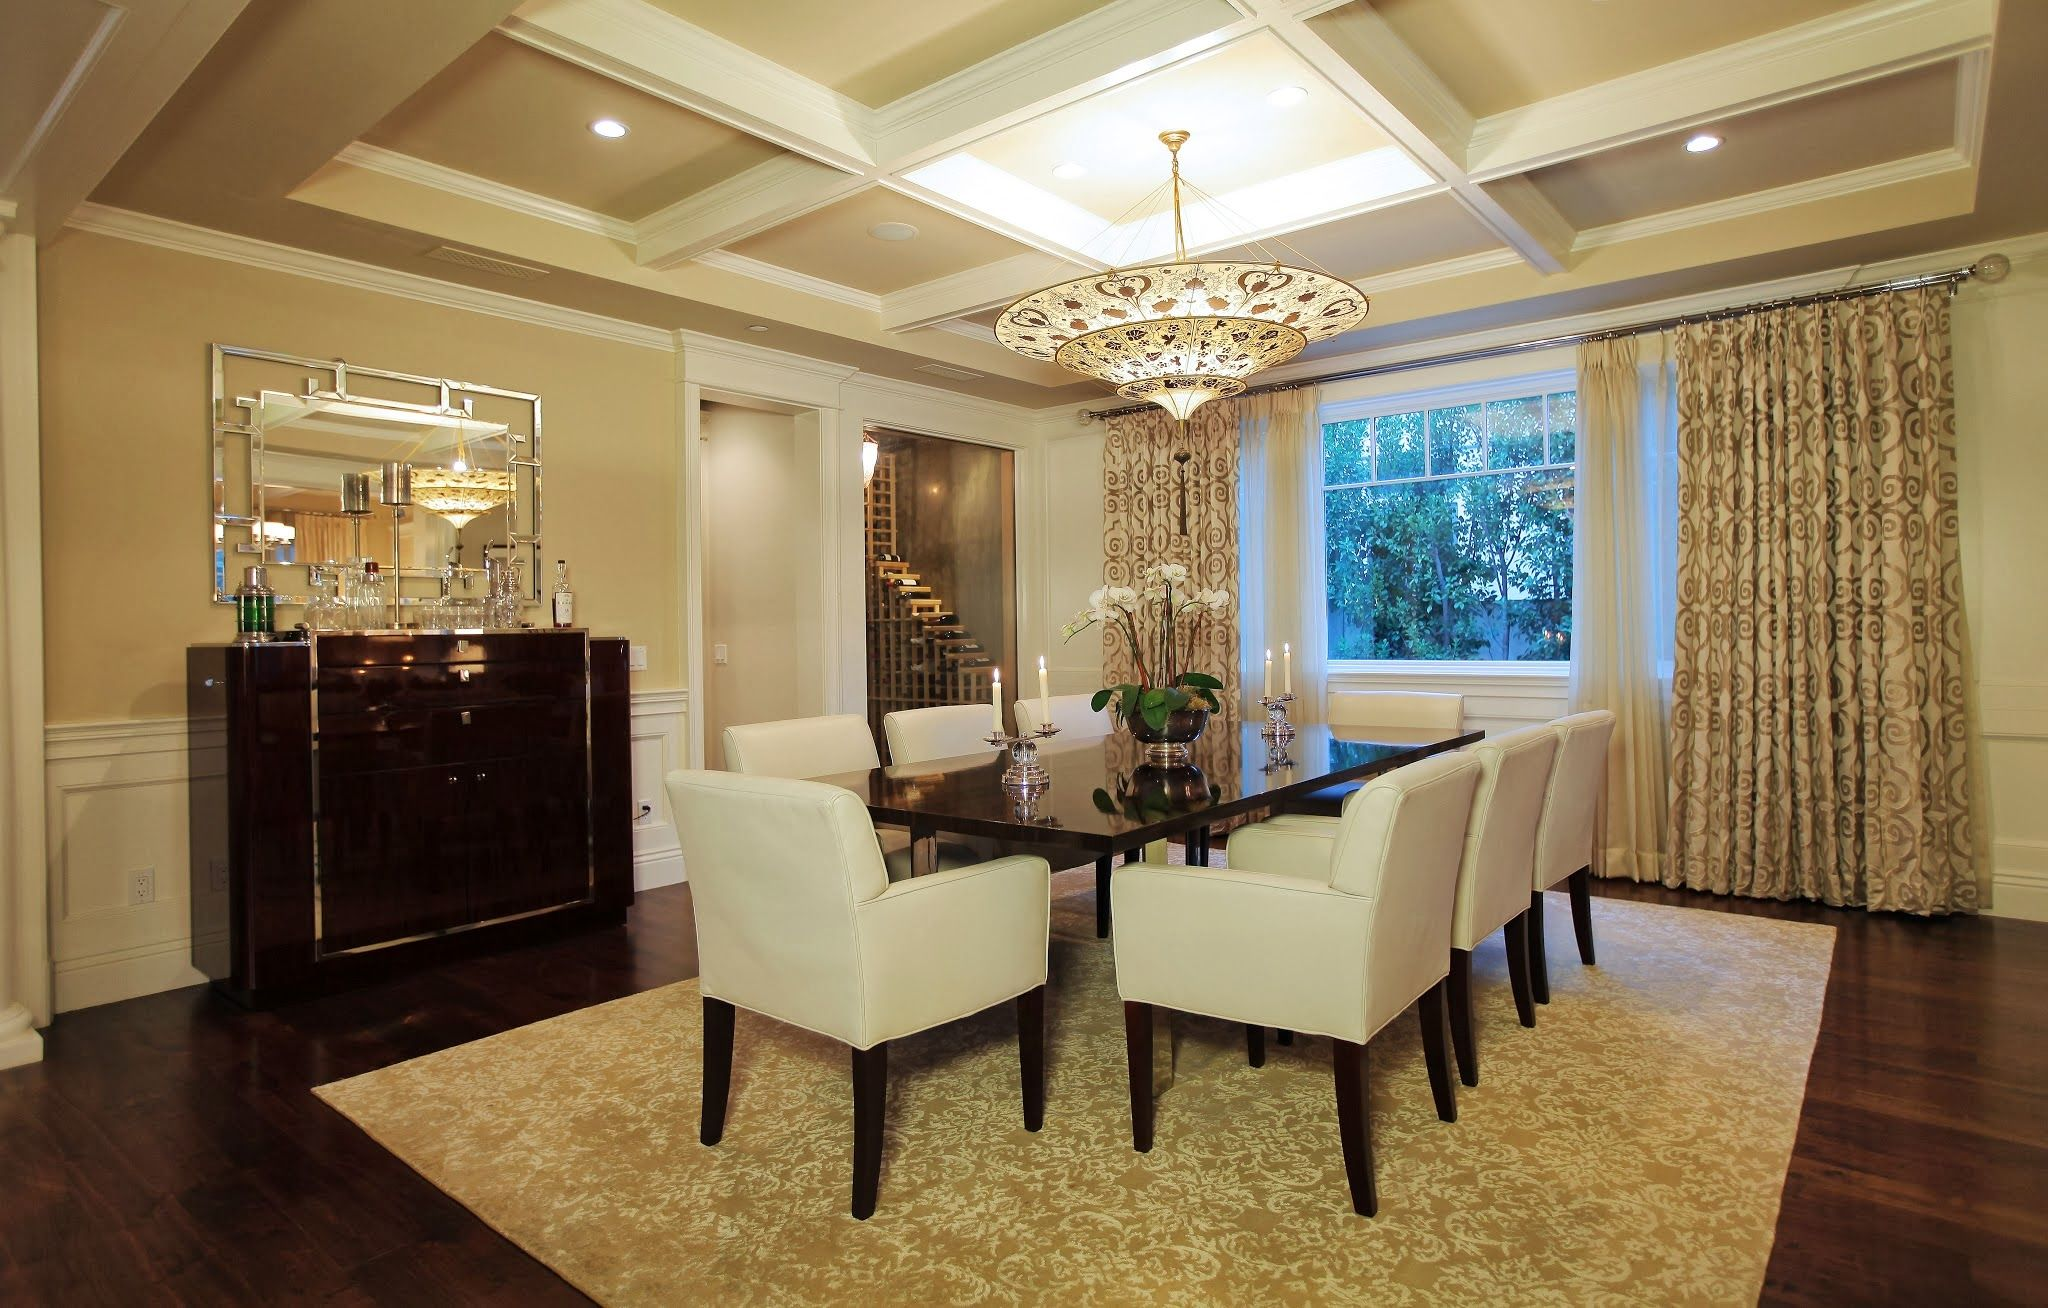 Top Ceiling Designs For Dining Room With